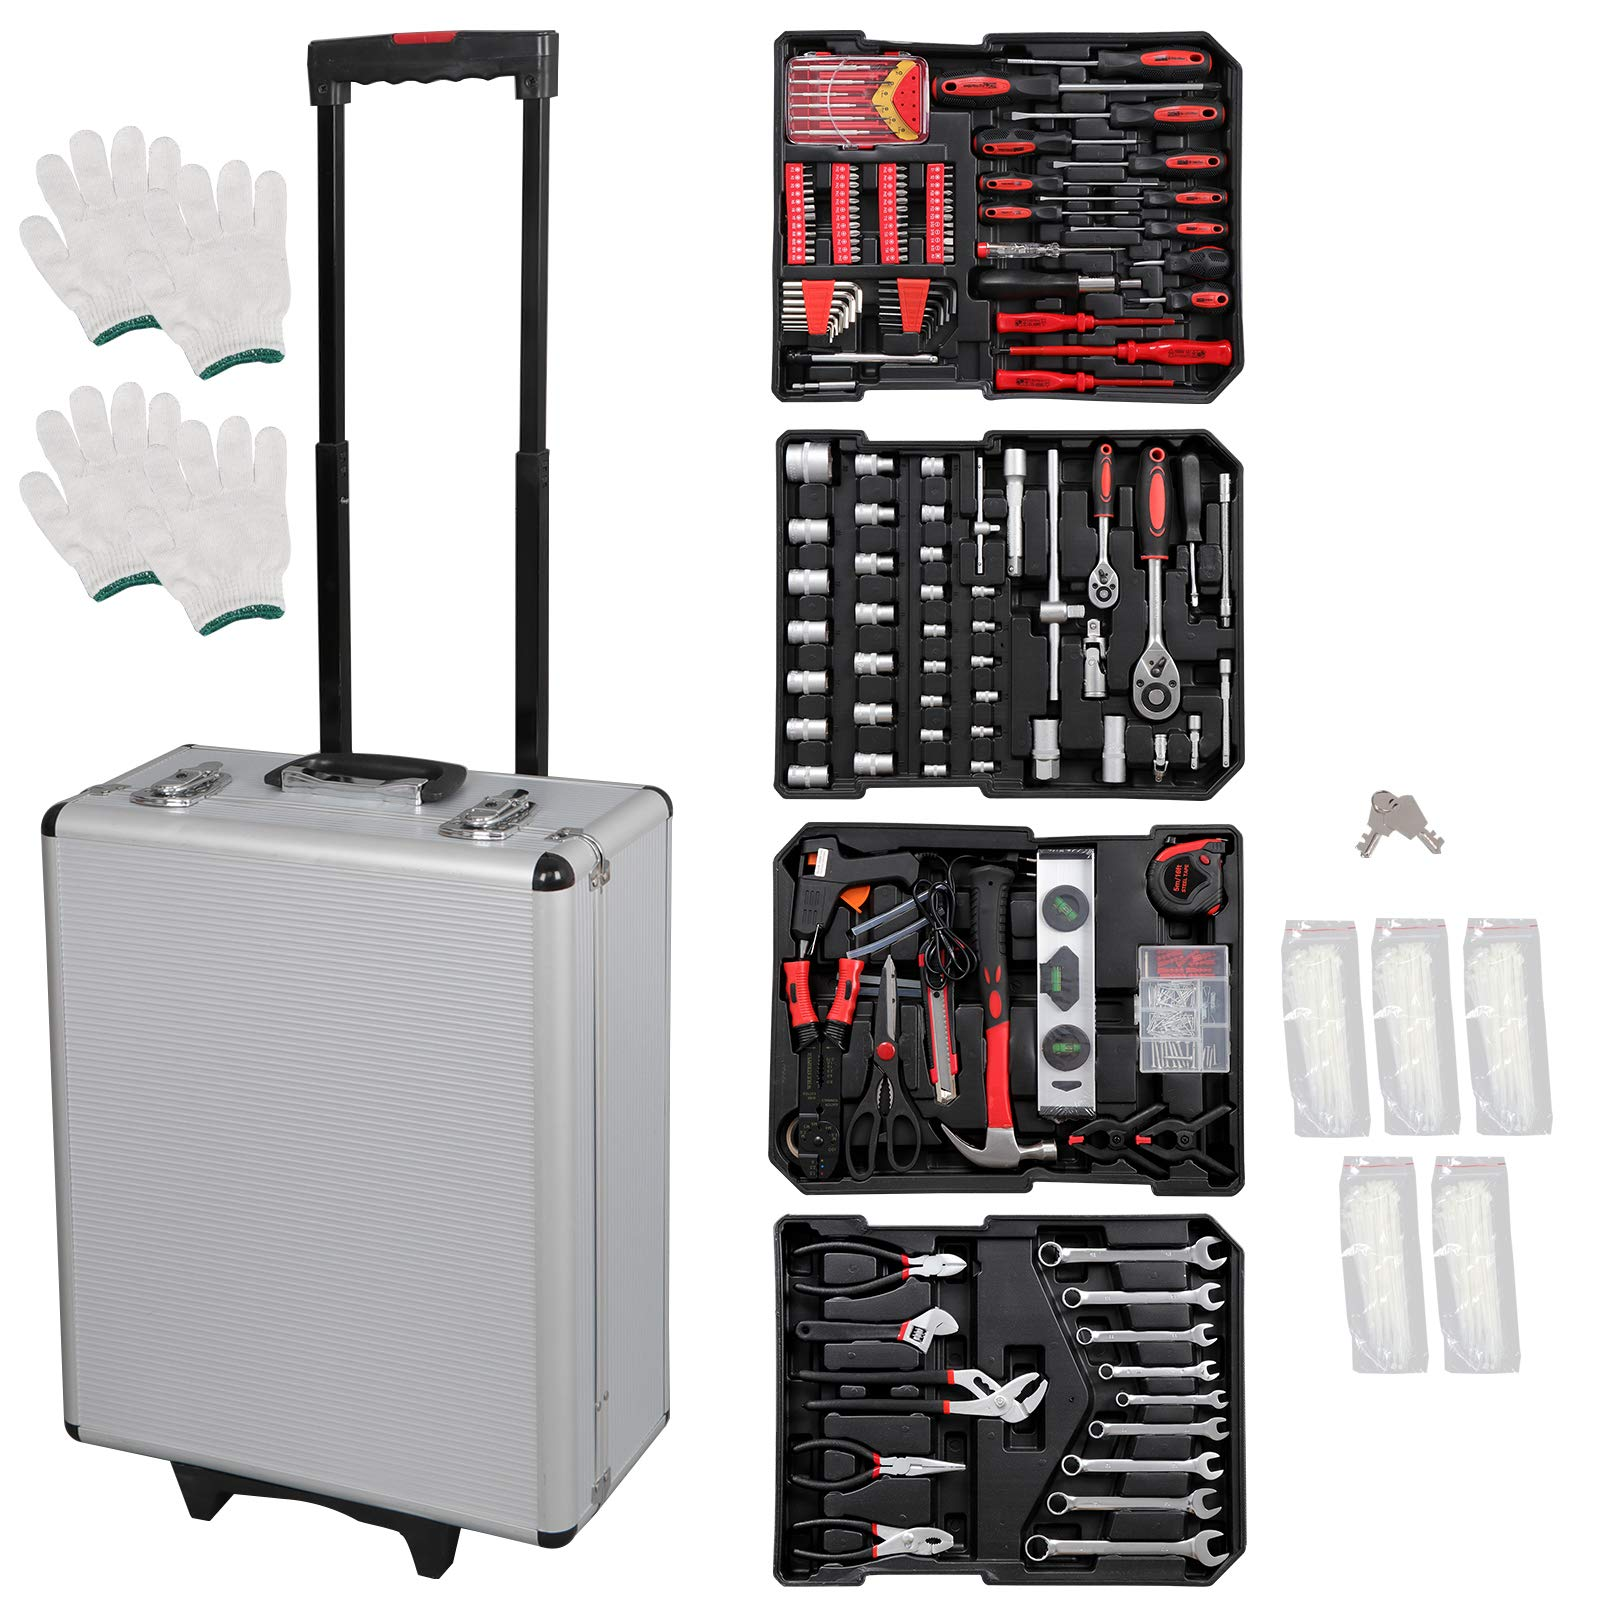 F2C 799 Piece Pro/Home DIY Mechanics Hand Tool Kit Set Auto General Repair Tools W/Portable Aluminum Trolley Storage Wheeled Case Tool Chest Organizer Box by F2C (Image #8)